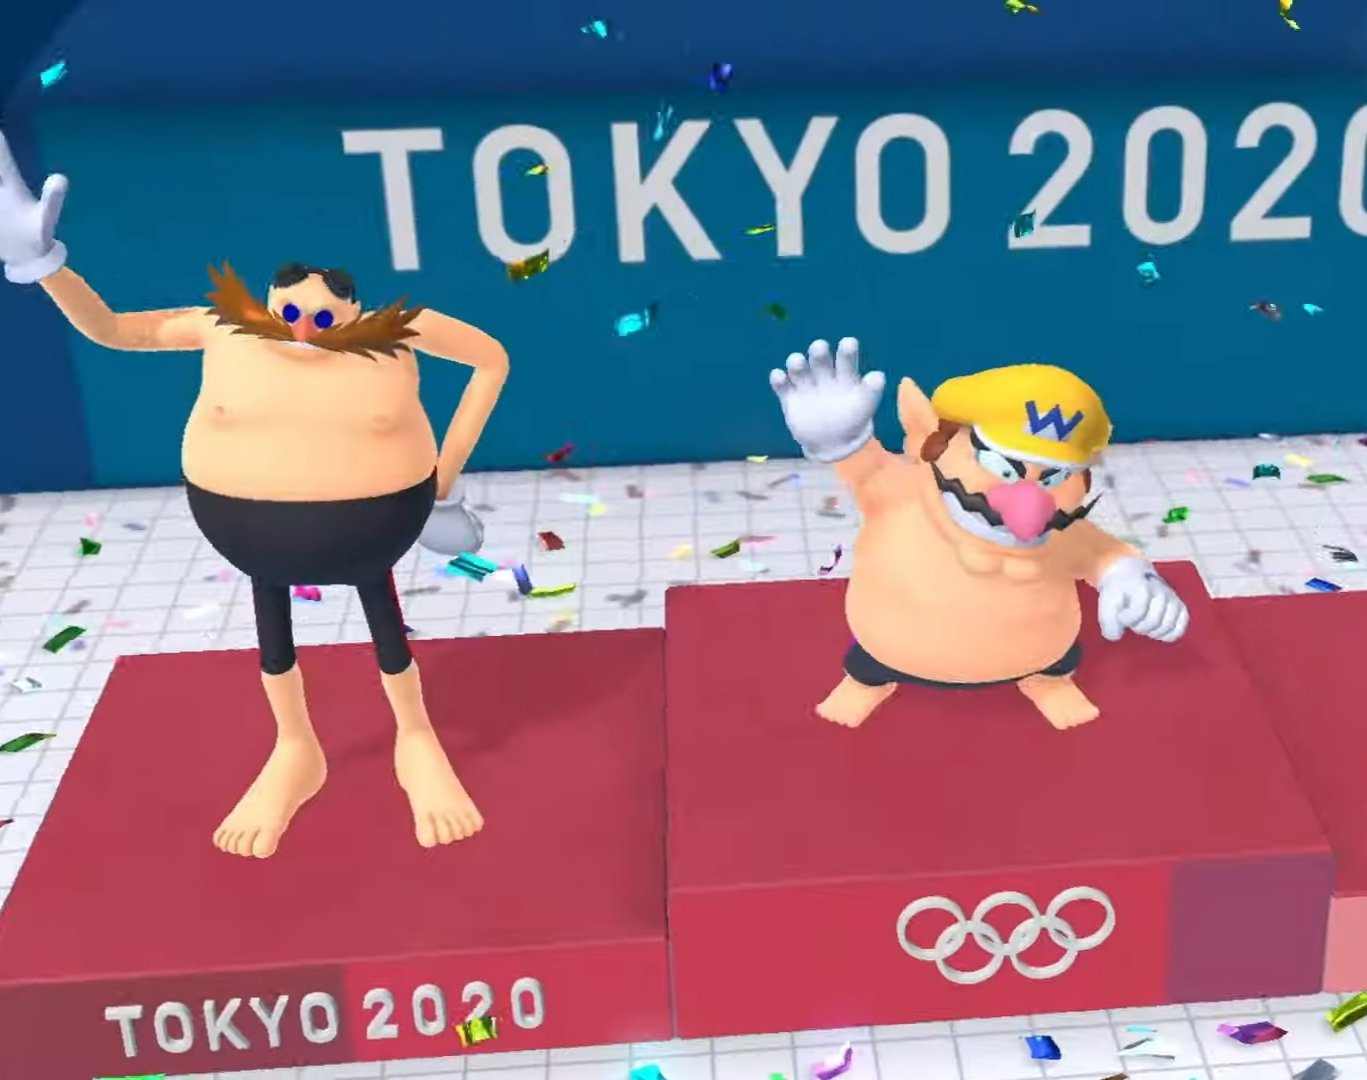 We have some questions after seeing Wario shirtless